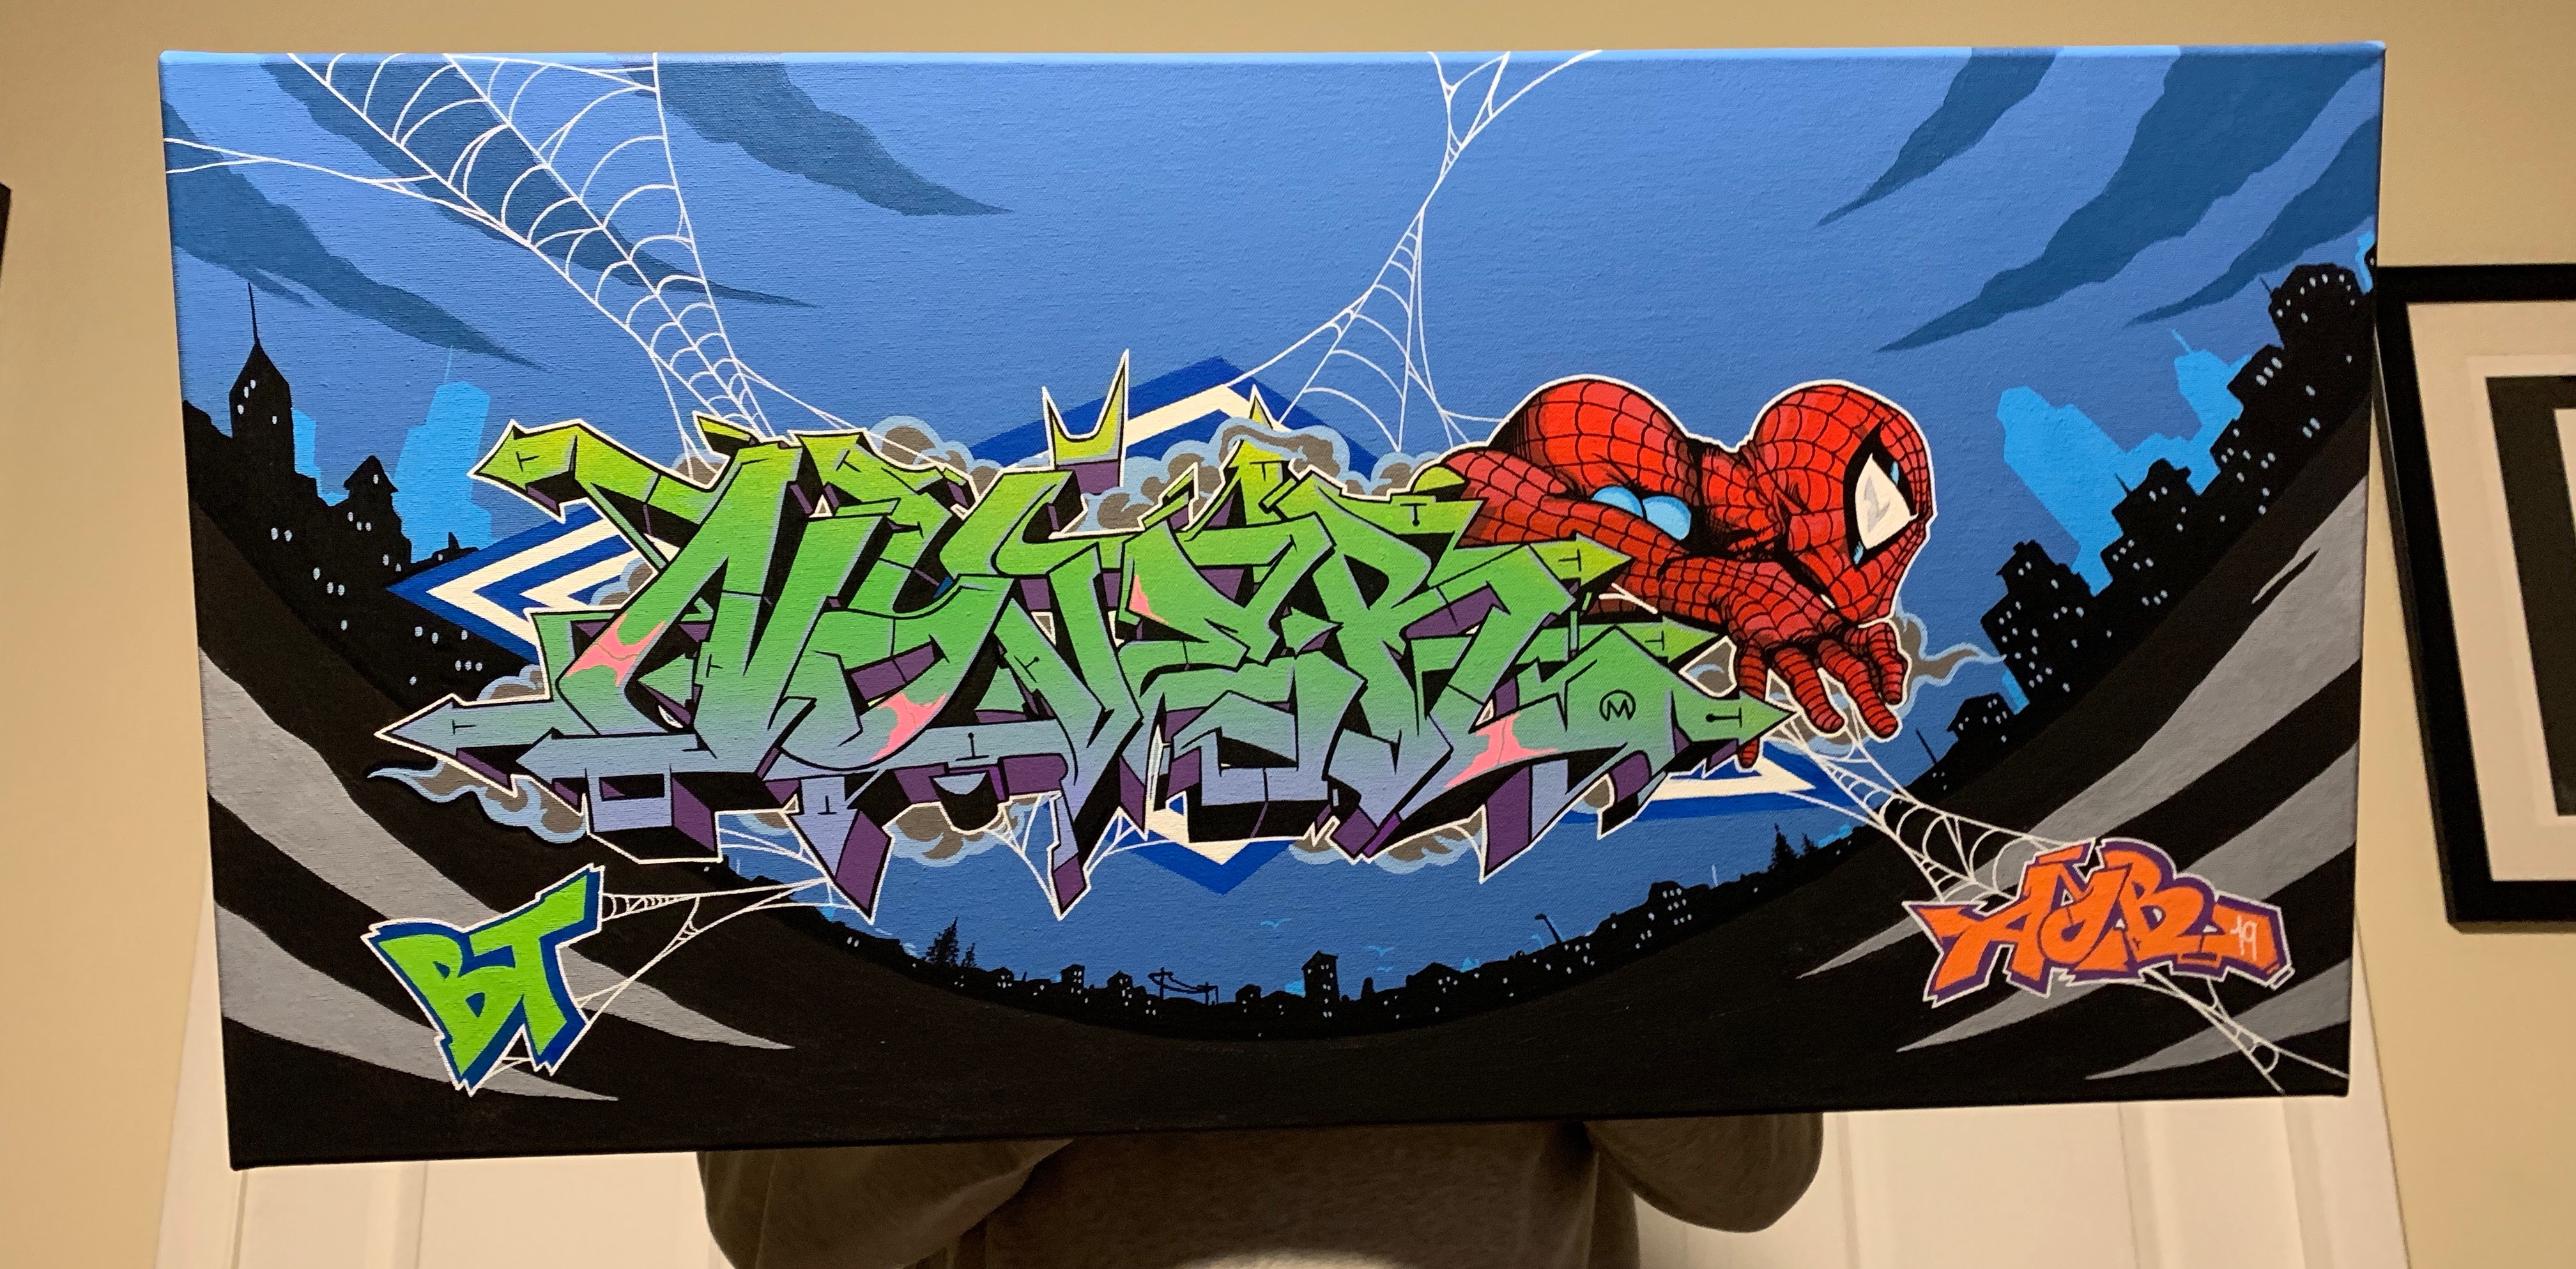 Spider-Man x Nover on 36 x 48' Canvas, Paint and Markers. 2019.